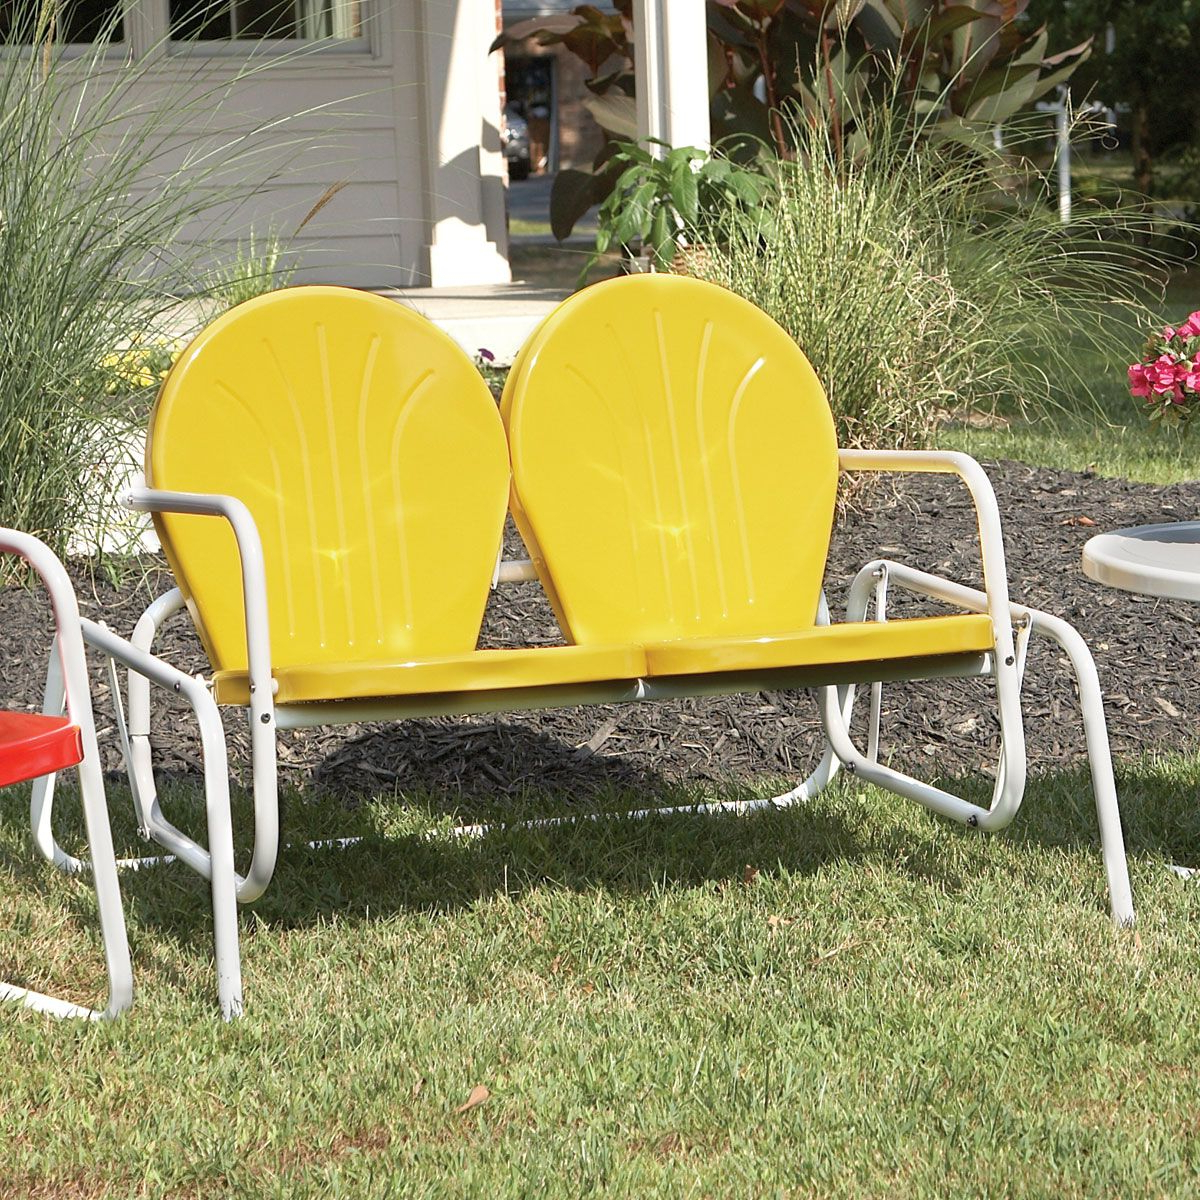 Vintage Metal Chairs Outdoor (Gallery 6 of 30)